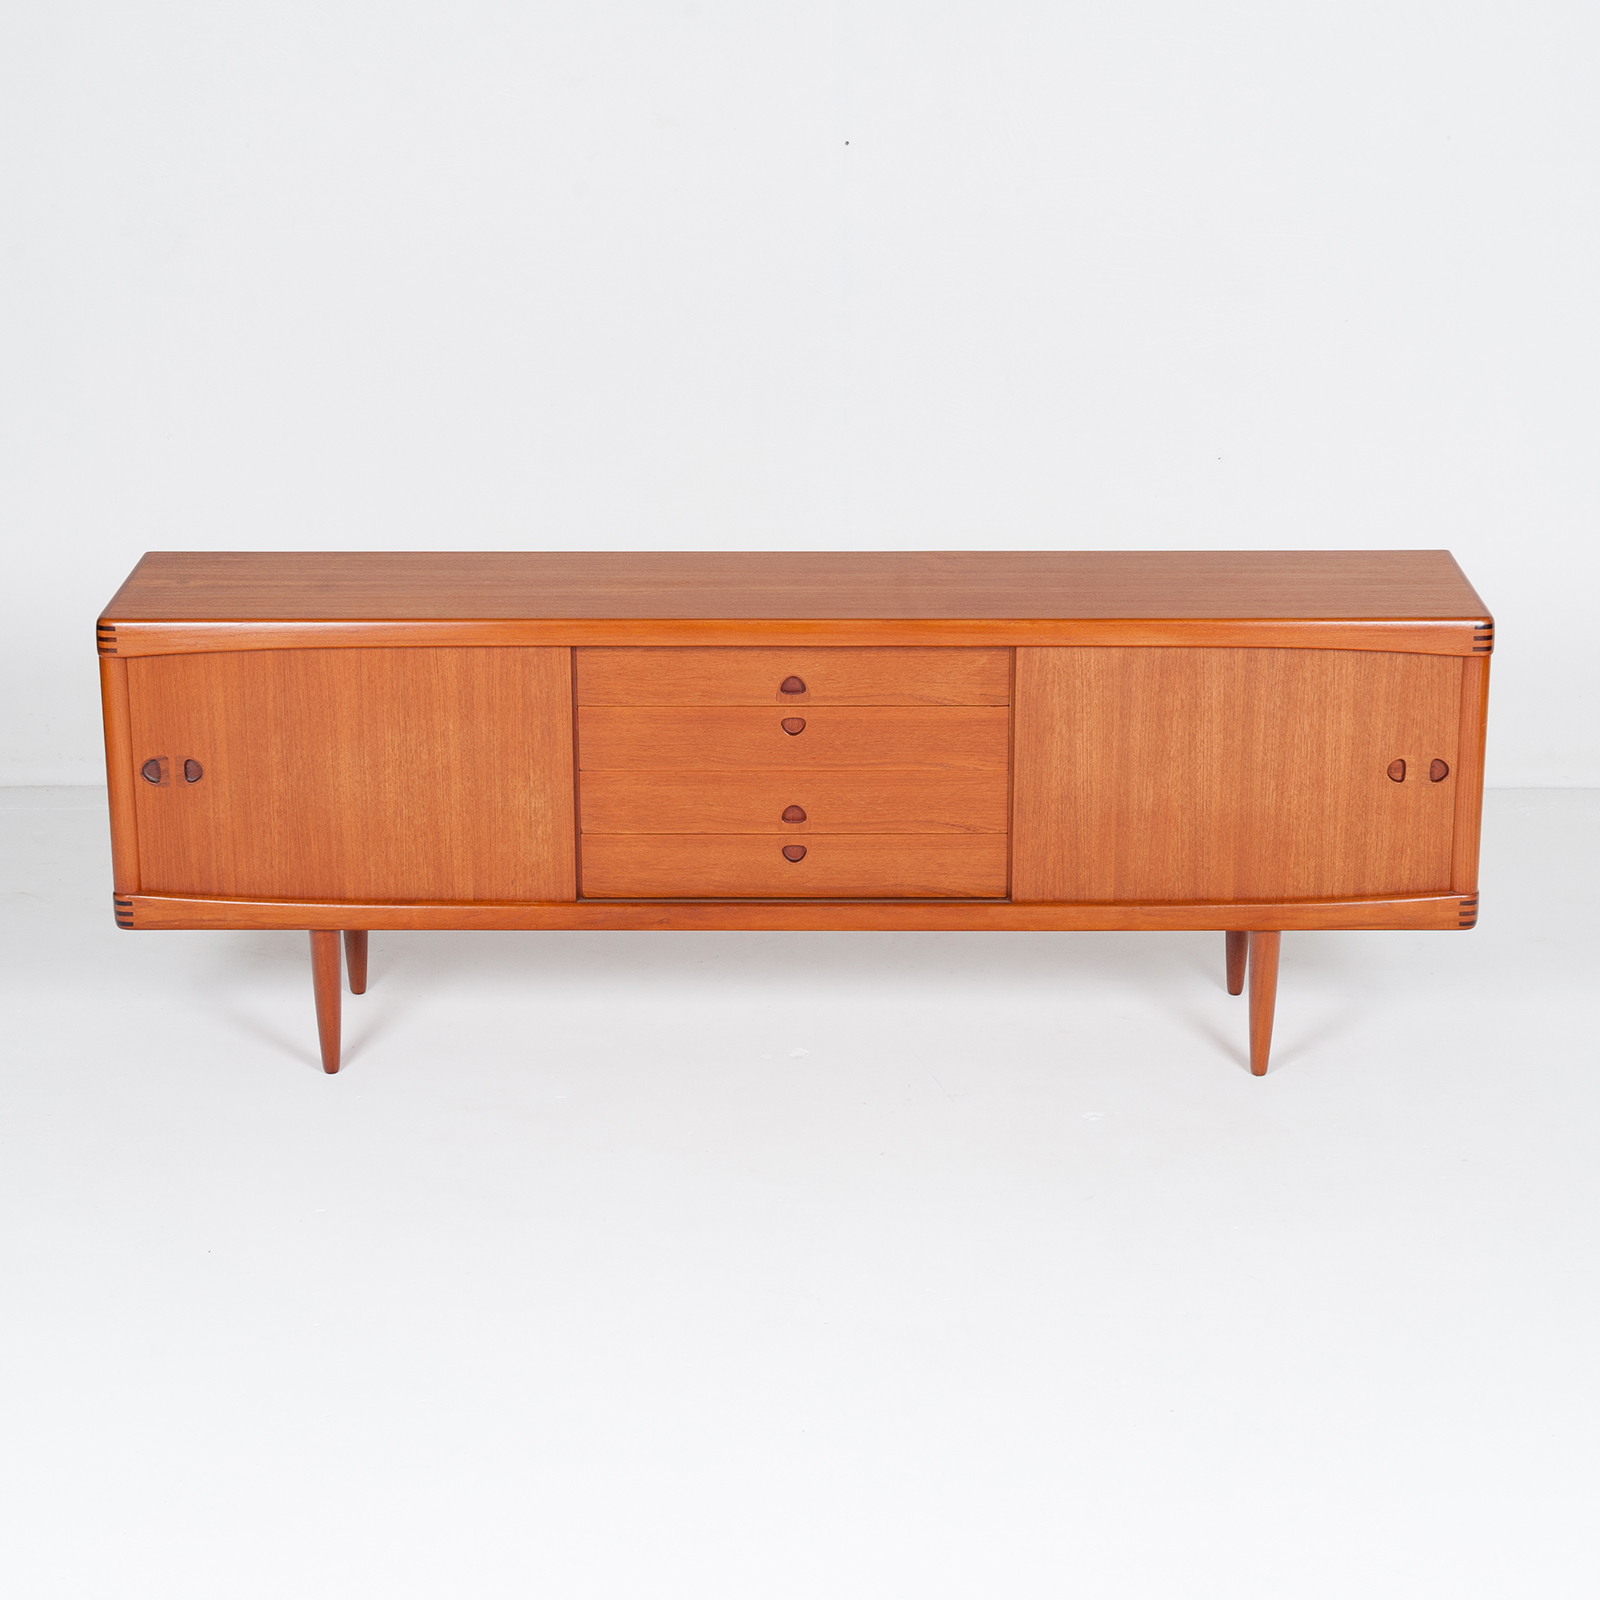 Sideboard By H W Klein In Teak For Bramin, 1960s, Denmark82